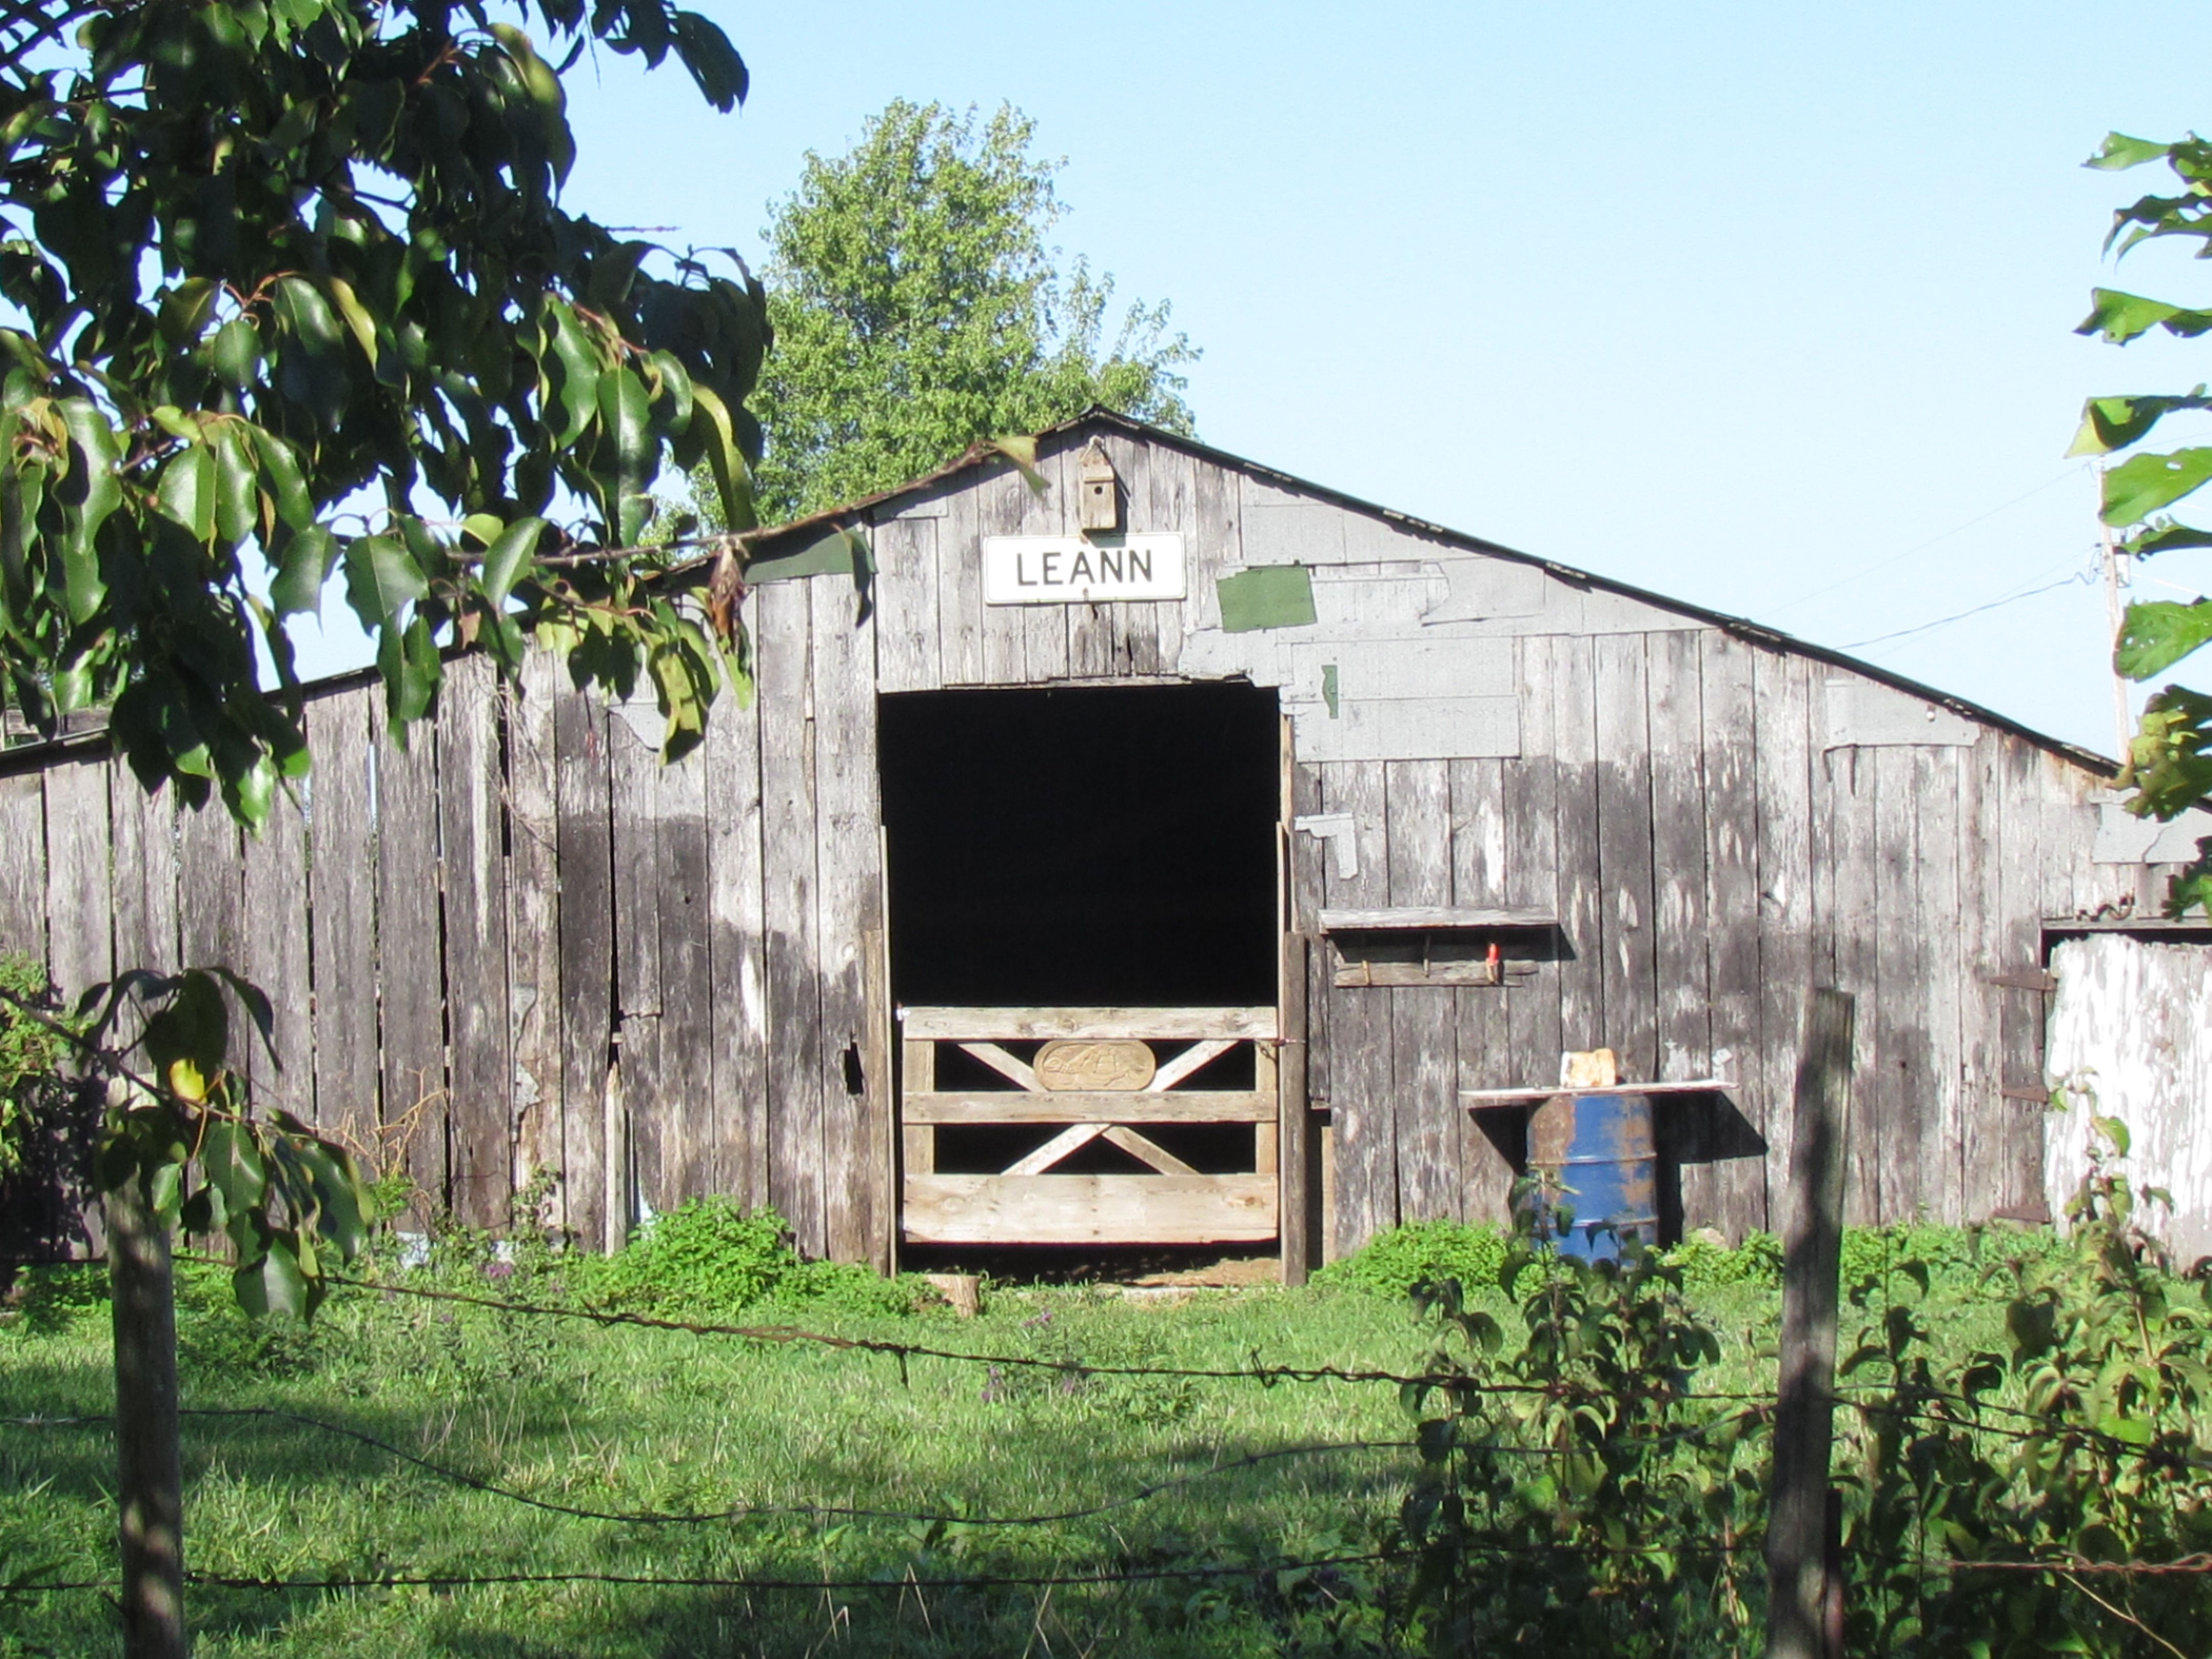 The old Enlow Dairy Barn 172 years old as of 2013  j' Larson